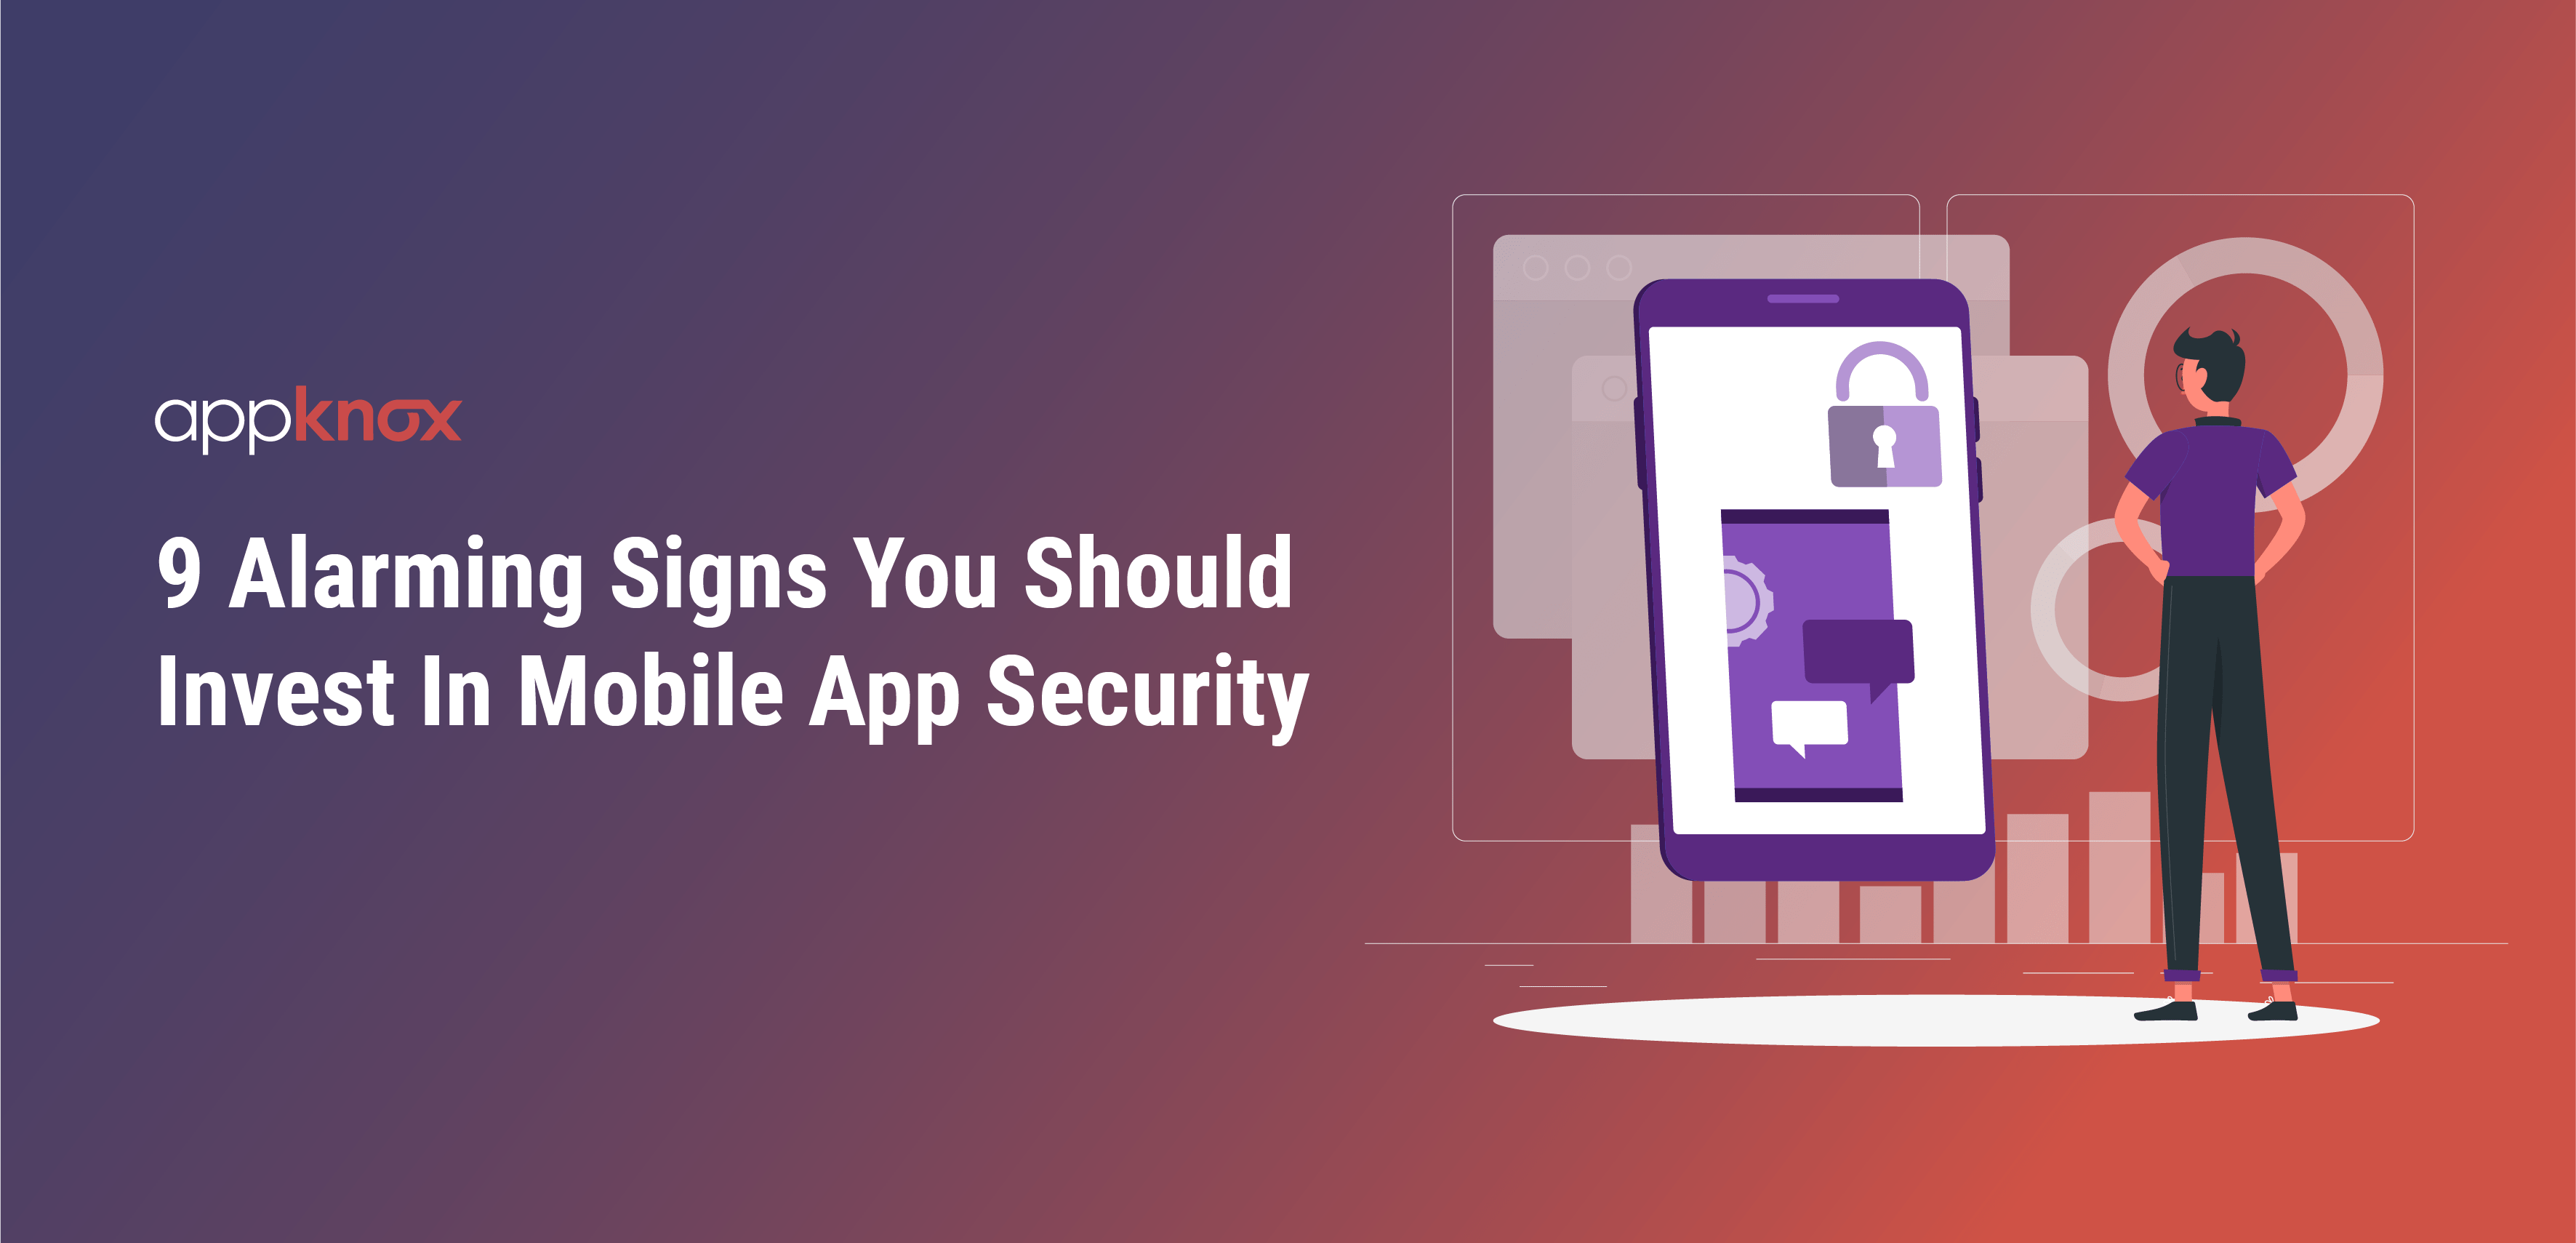 9 Alarming Signs You Should Invest In Mobile App Security